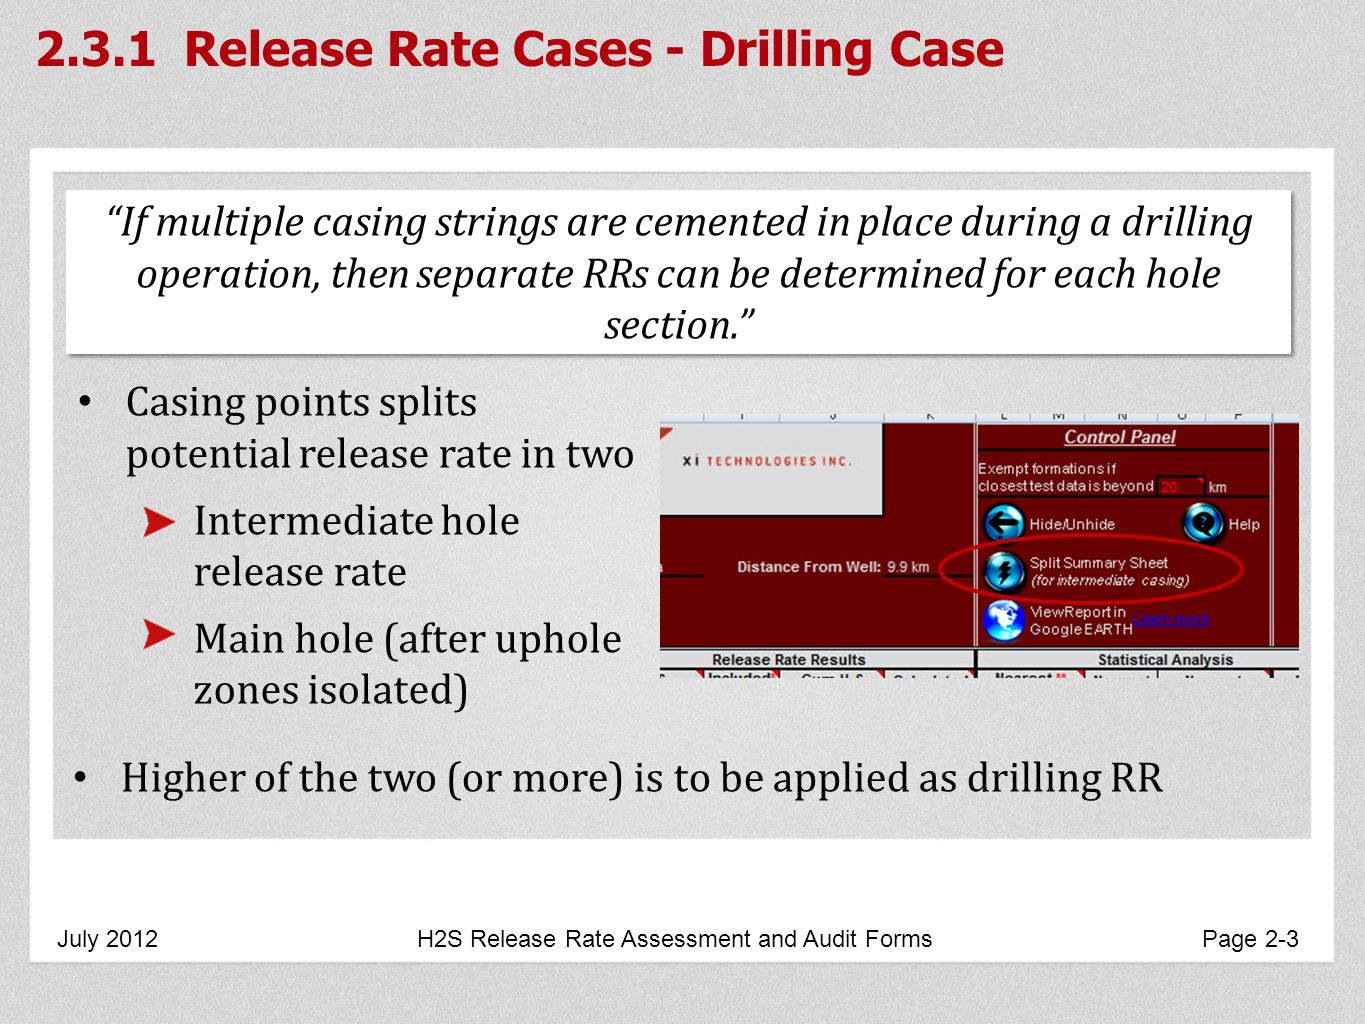 2.3.1 Release Rate Cases - Drilling Case July 2012 H2S Release Rate Assessment and Audit Forms Page 2-3 If multiple casing strings are cemented in place during a drilling operation, then separate RRs can be determined for each hole section.